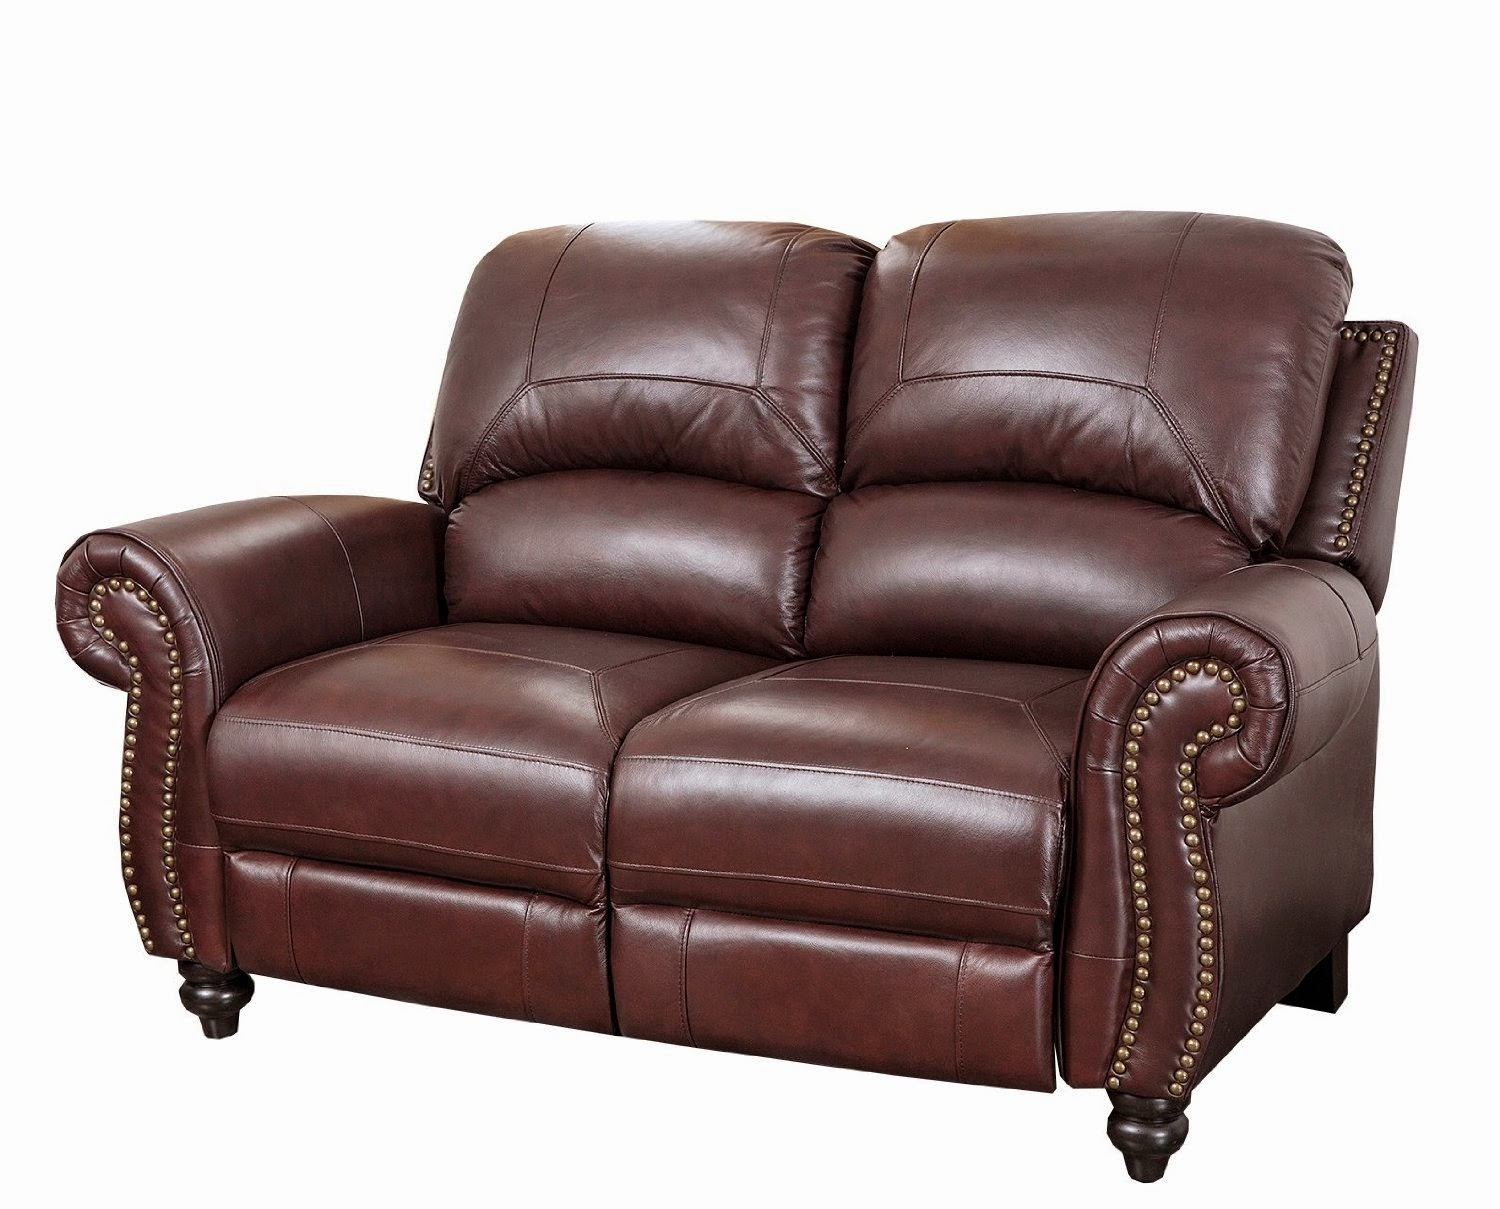 recliner sofas leather restoration hardware kensington sofa dimensions best reclining for the money vivaldi 2 seater